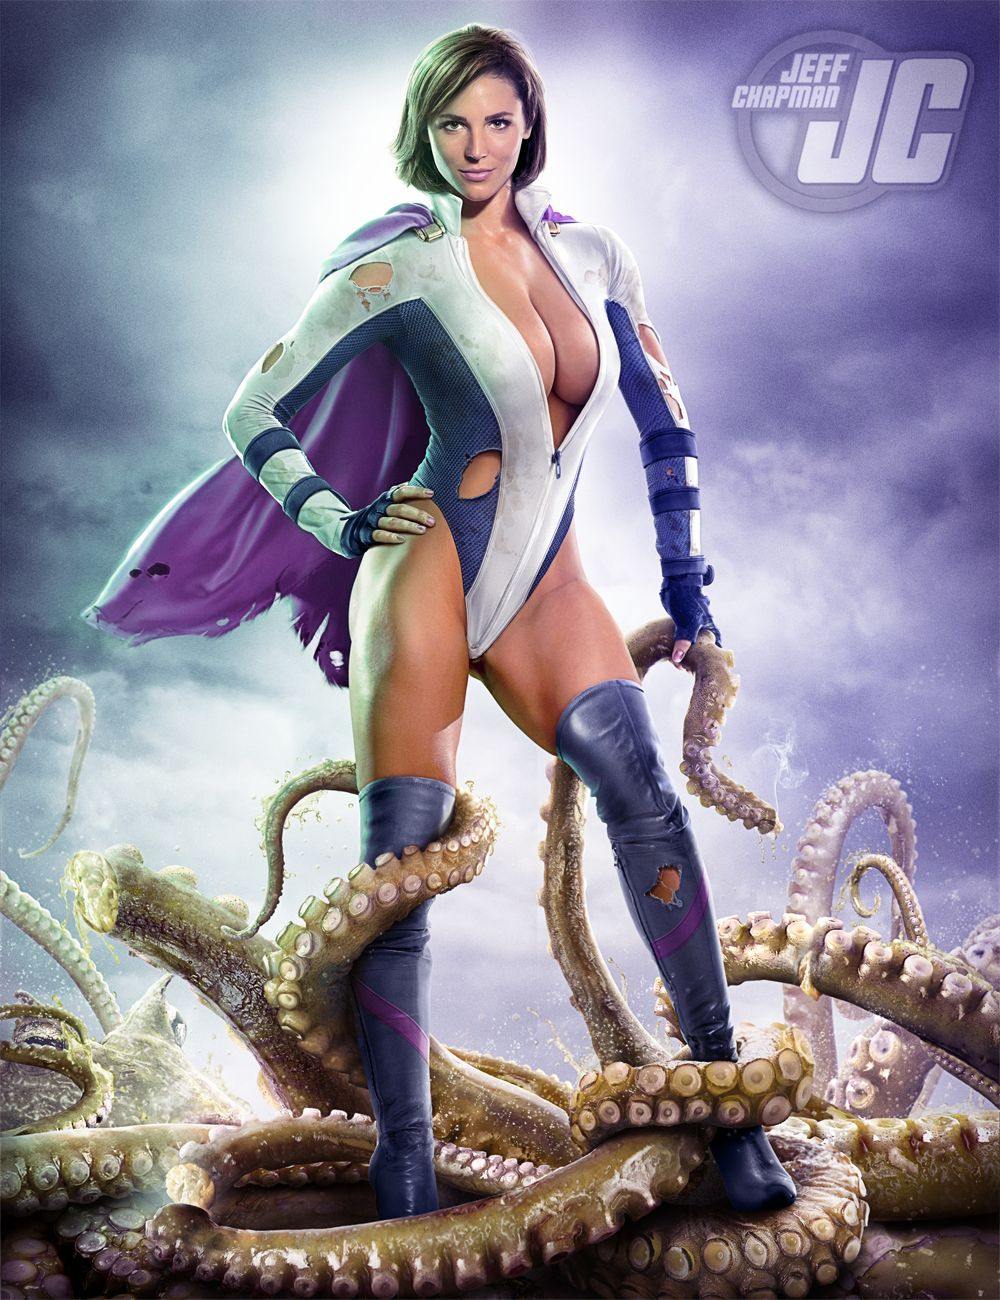 Framing Comic Books